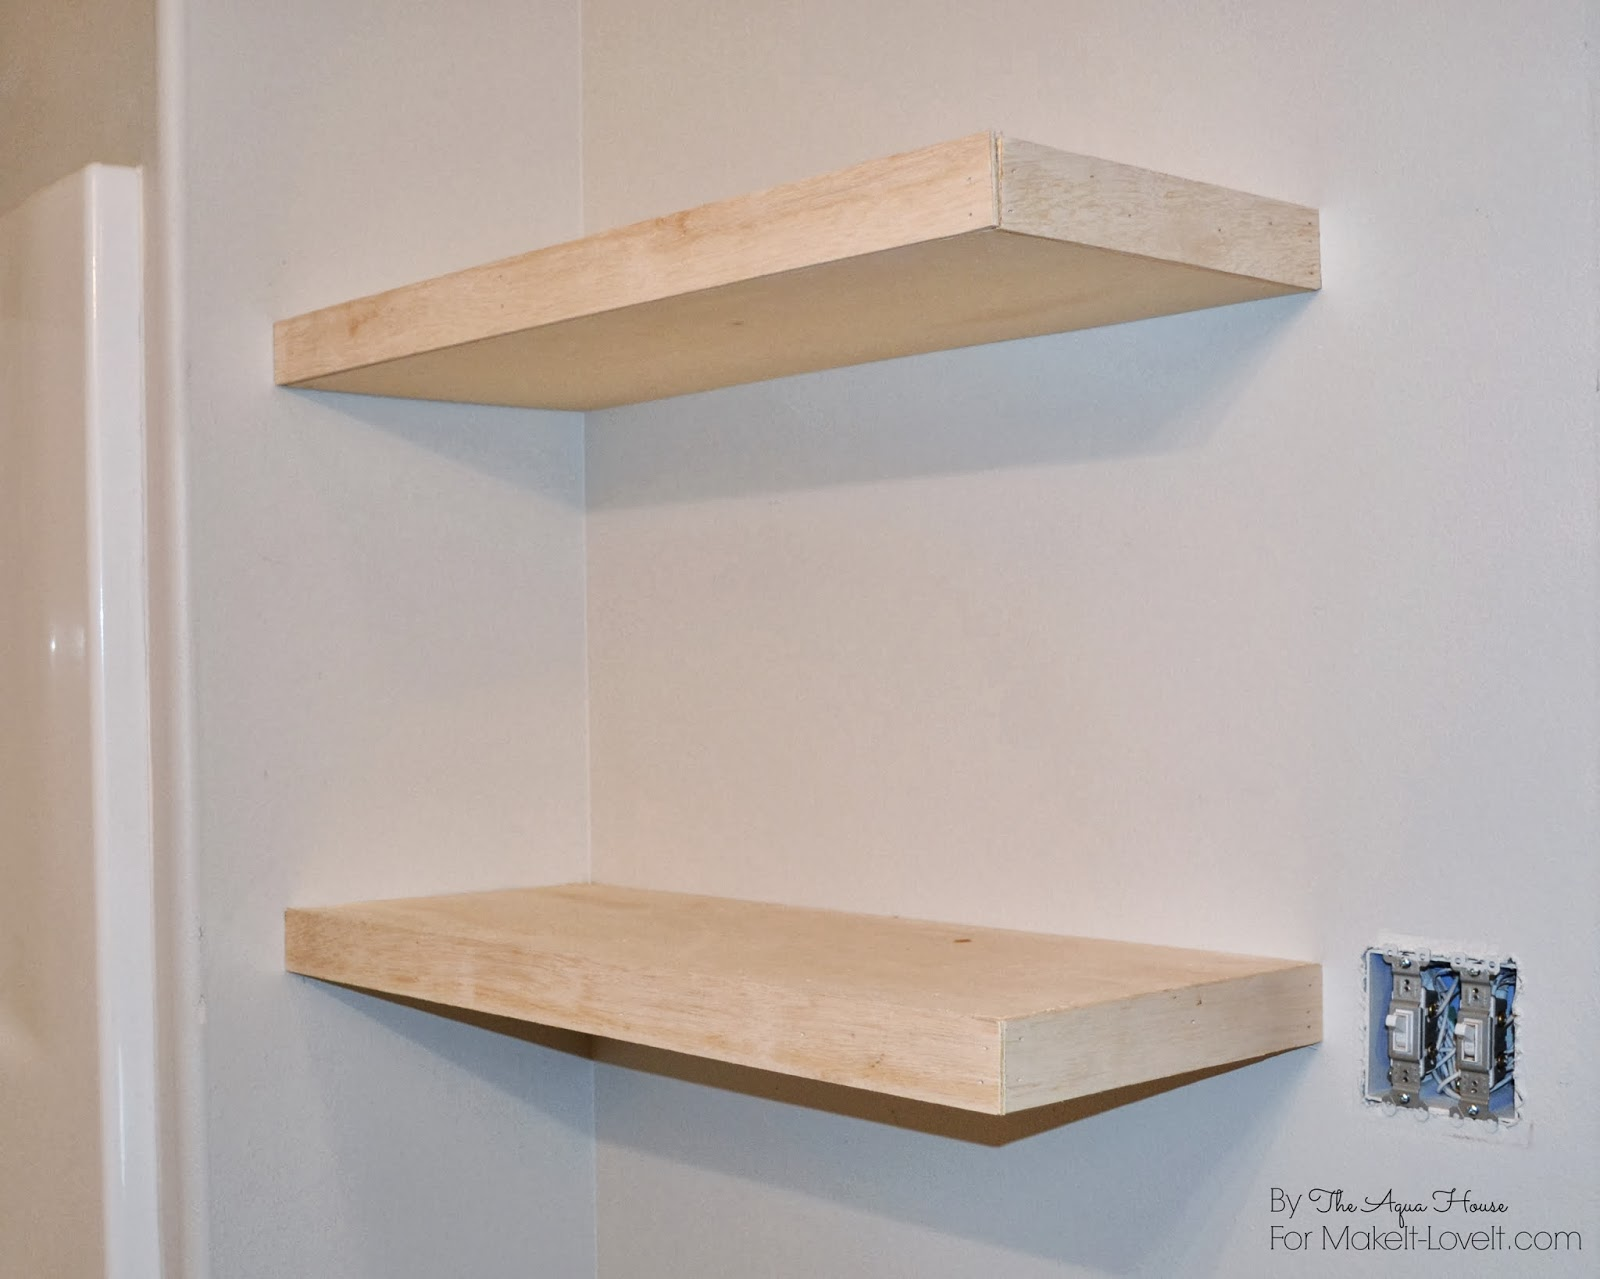 diy floating shelves great storage solution make and love without screws makeit loveit wooden expandable coat rack barn wood wall decor shadow box shelving unit vintage corner